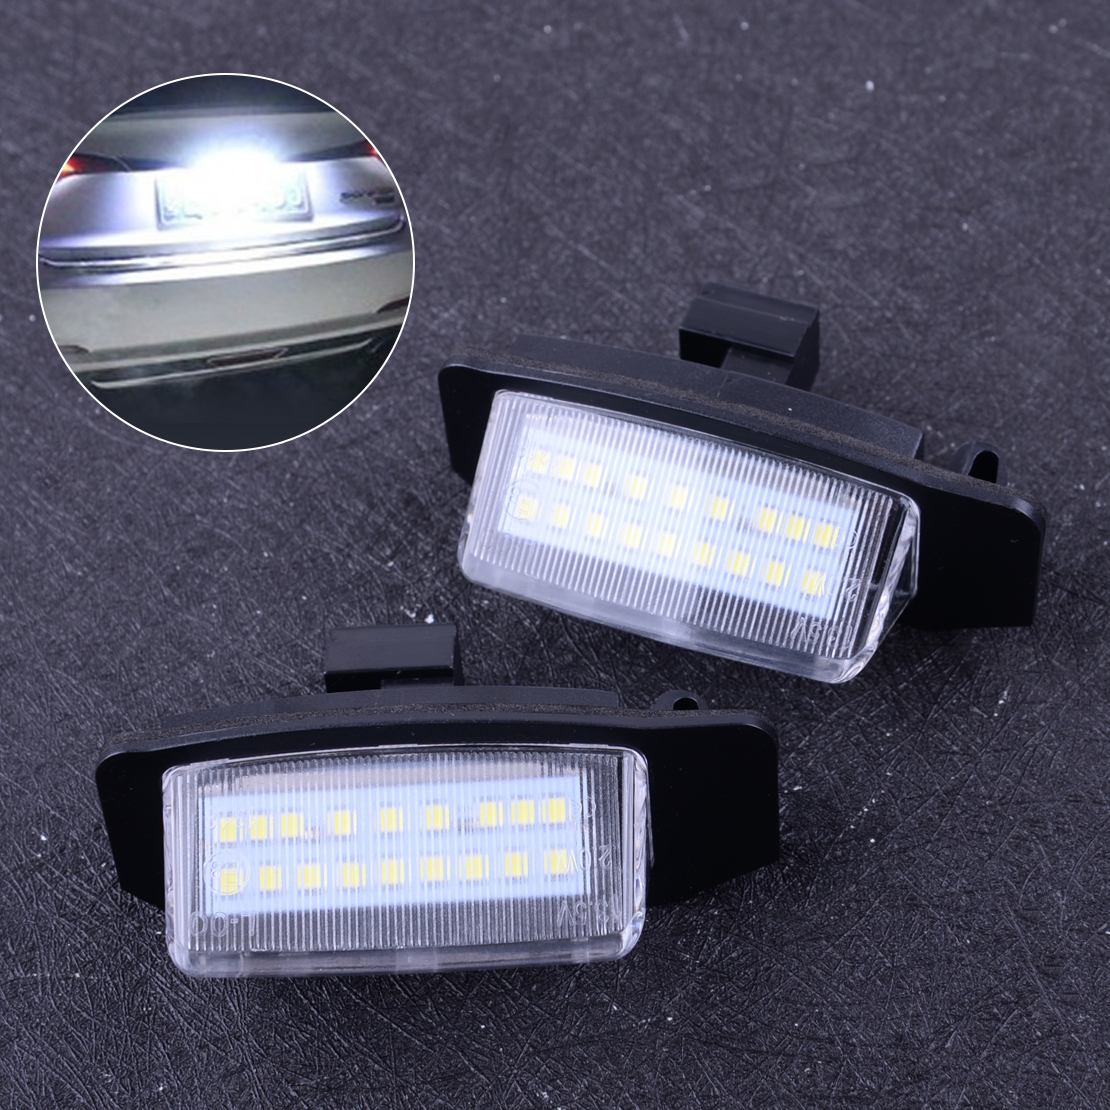 CITALL 2Pin 12V 2400Lm 18LED 번호 번호판 라이트 리어 램프 벌브 Assy Fit For <font><b>Mitsubishi</b></font> Lancer Sportback & <font><b>Outlander</b></font> <font><b>2008</b></font> image